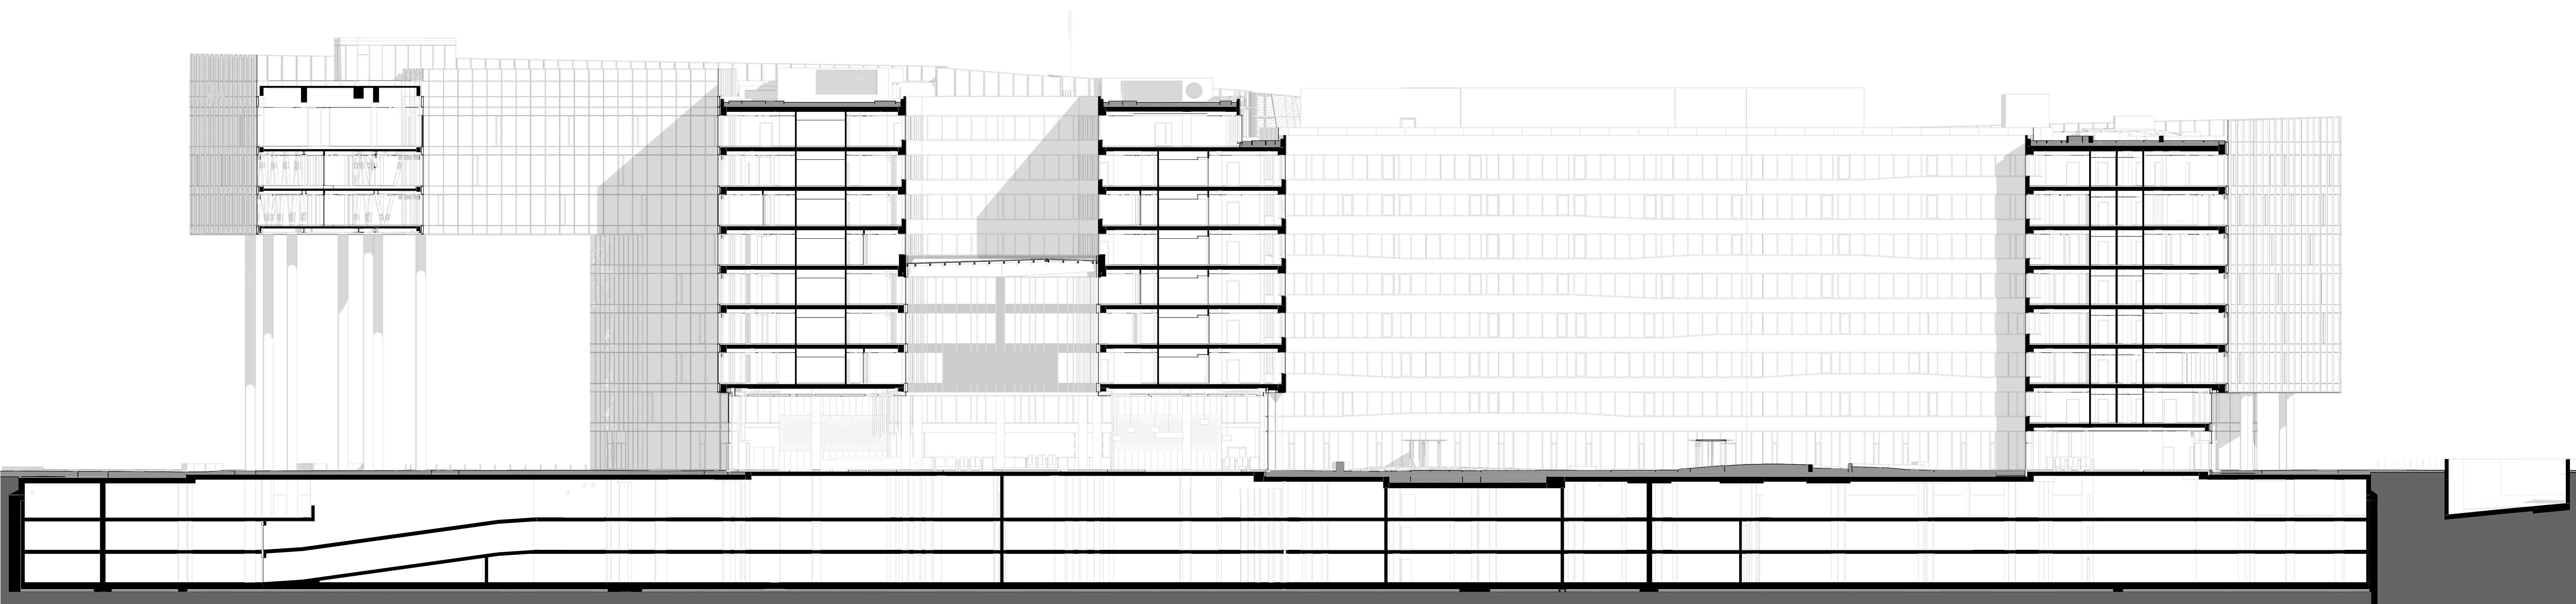 Longitudinal Section TIBA Architects Studio kft}